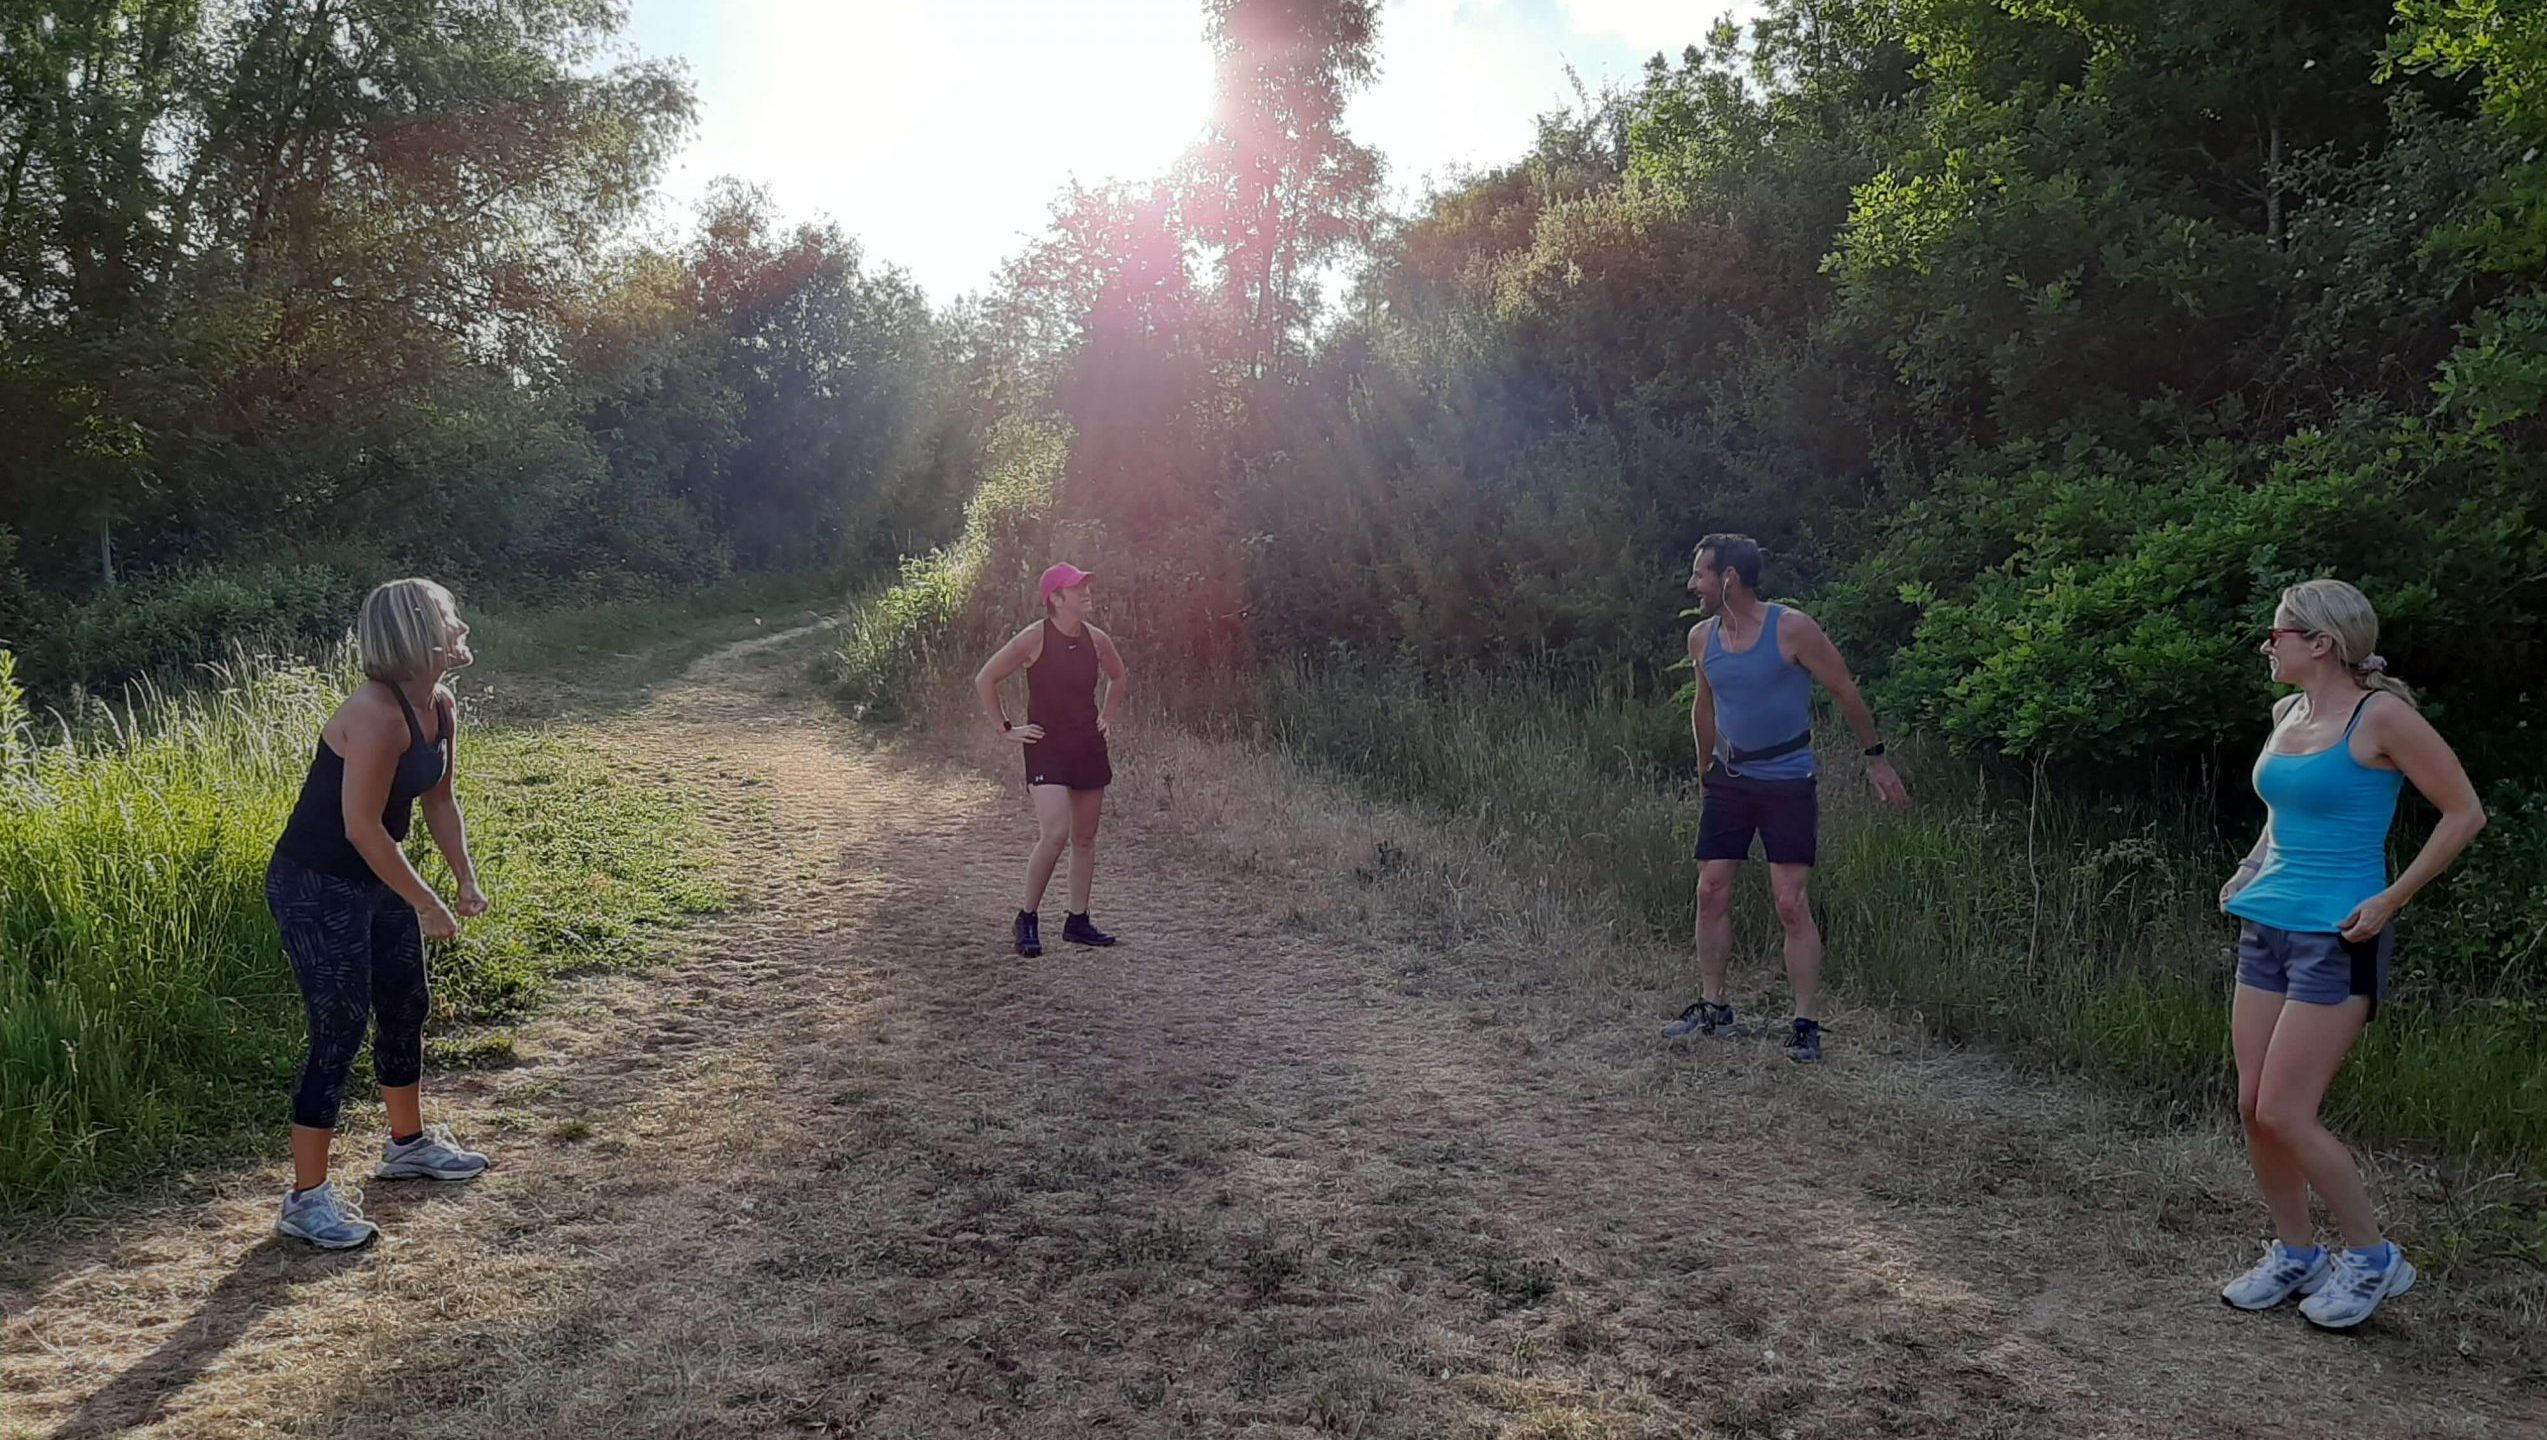 Outdoor bootcamp session with PMF Military Fitness